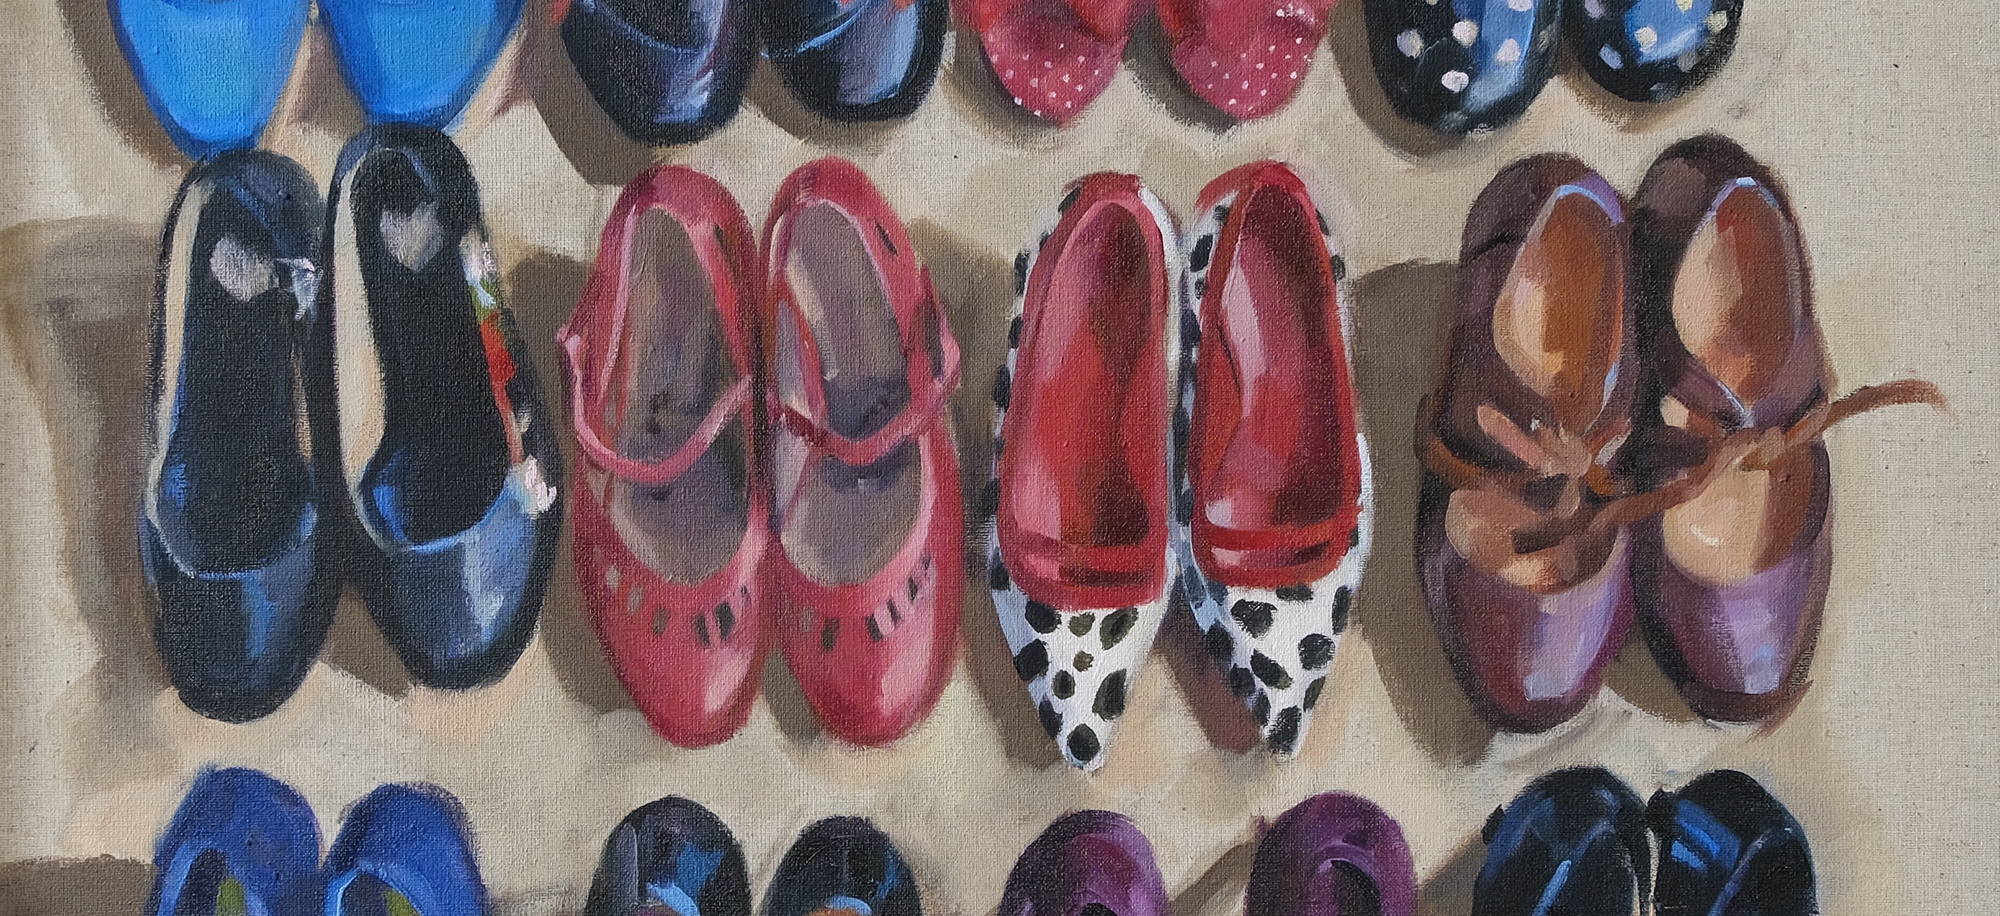 All the Shoes that I loved